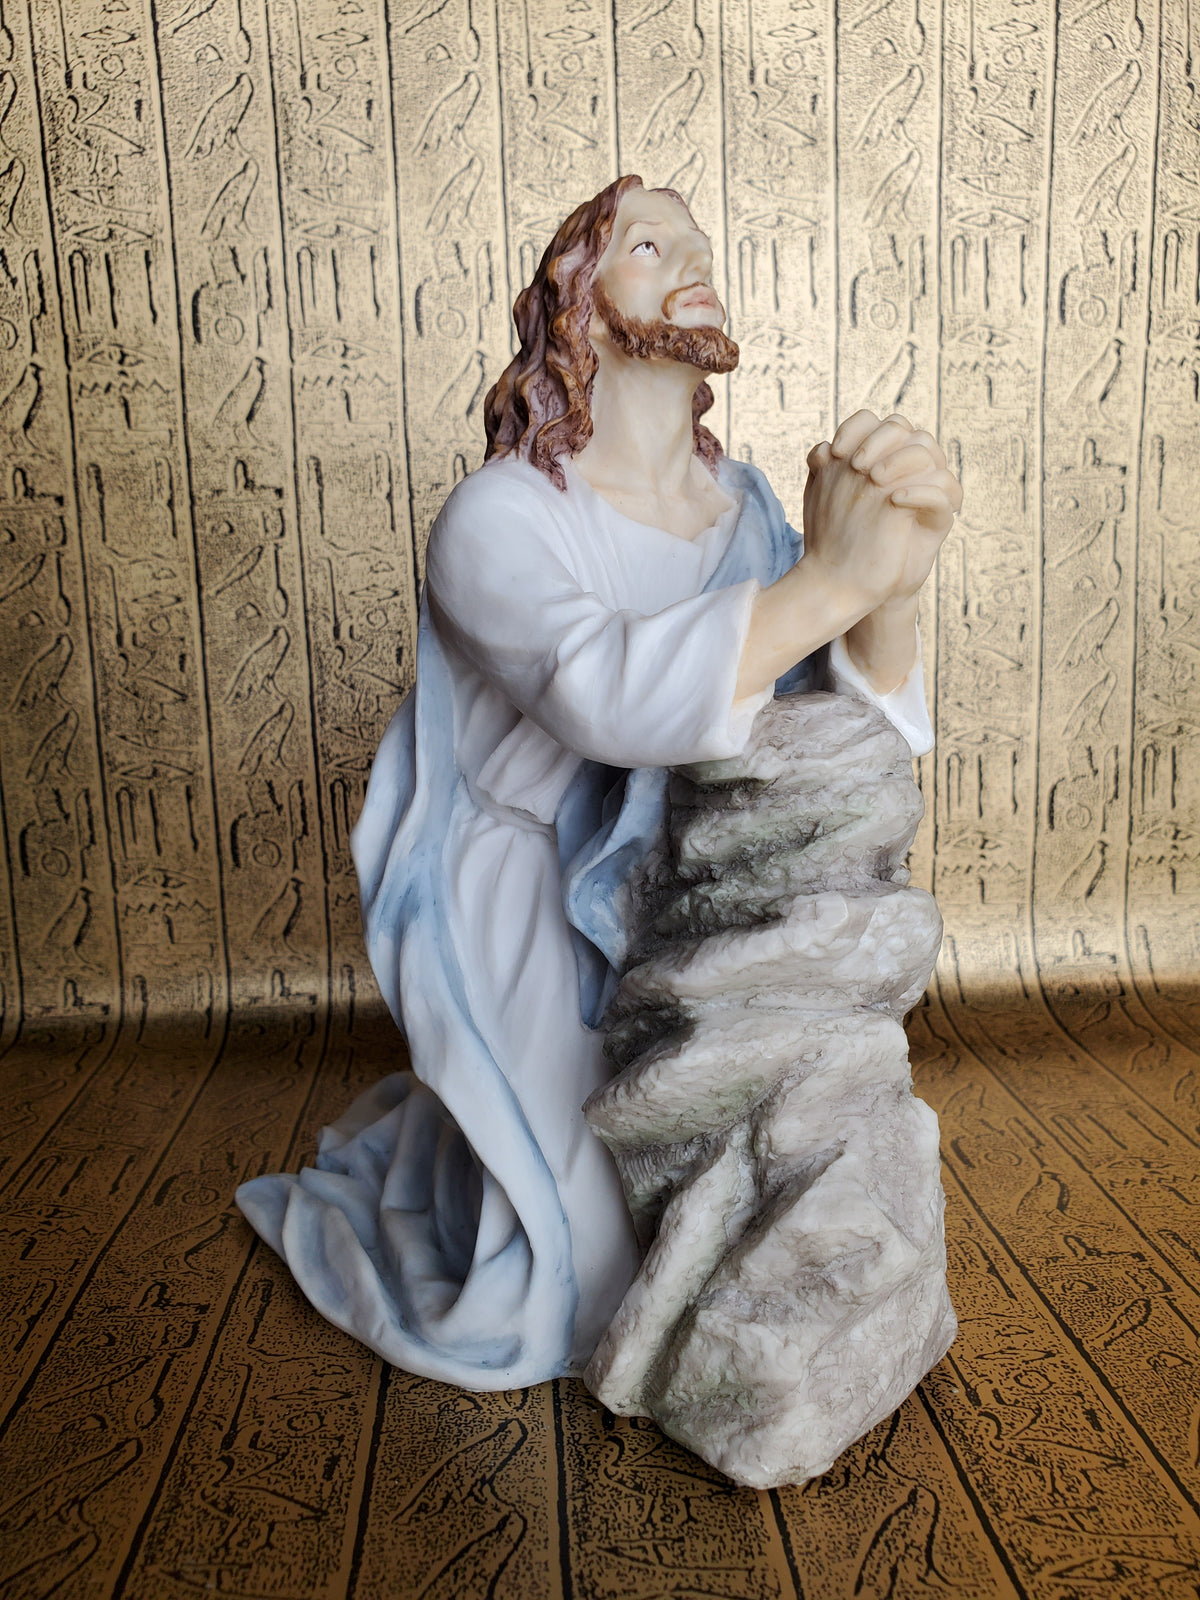 Jesus Christ Praying at Gethsemane Statue